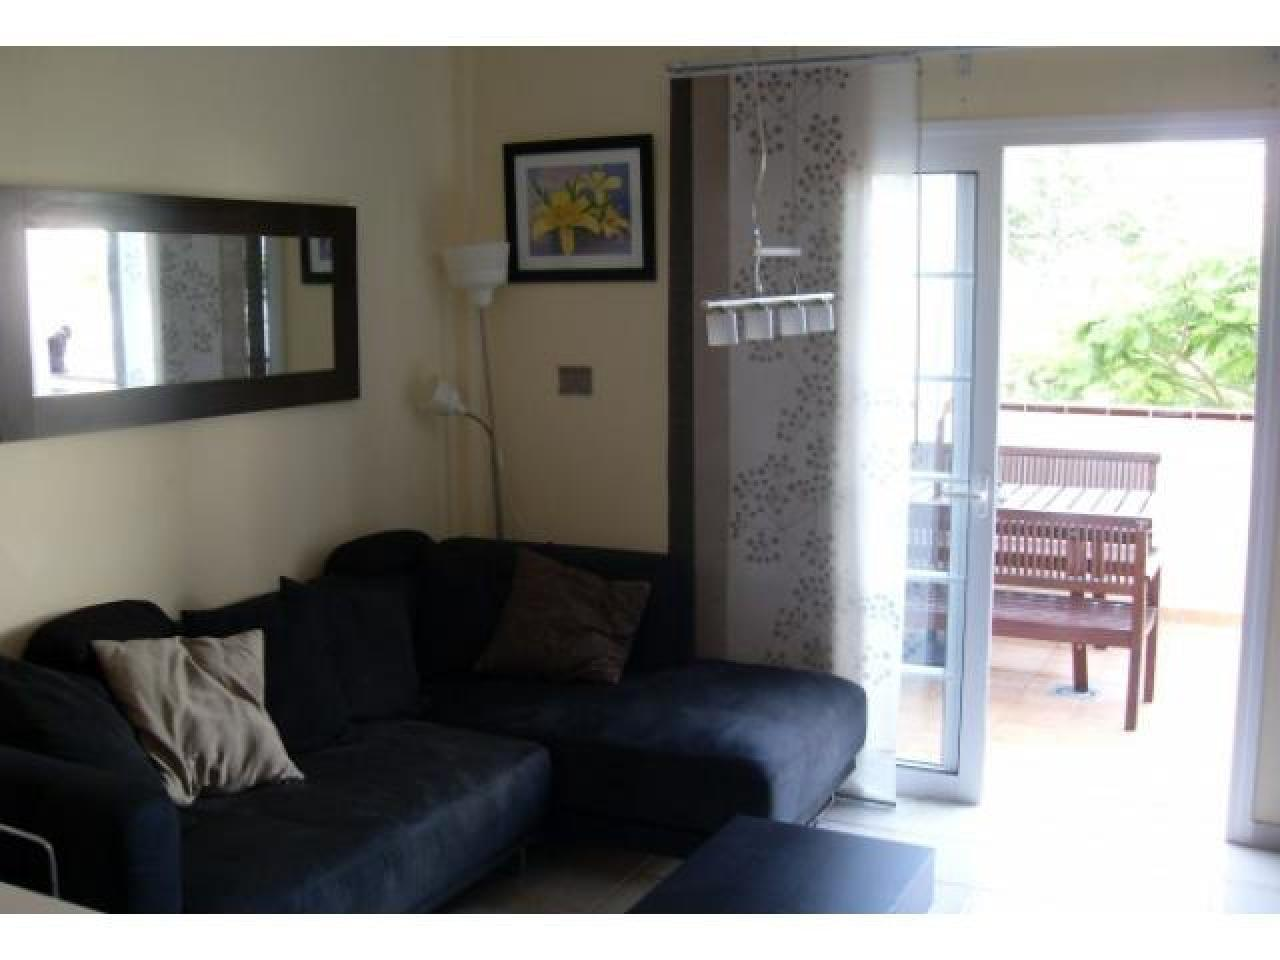 Real estate in Tenerife for sale » #141 - 2